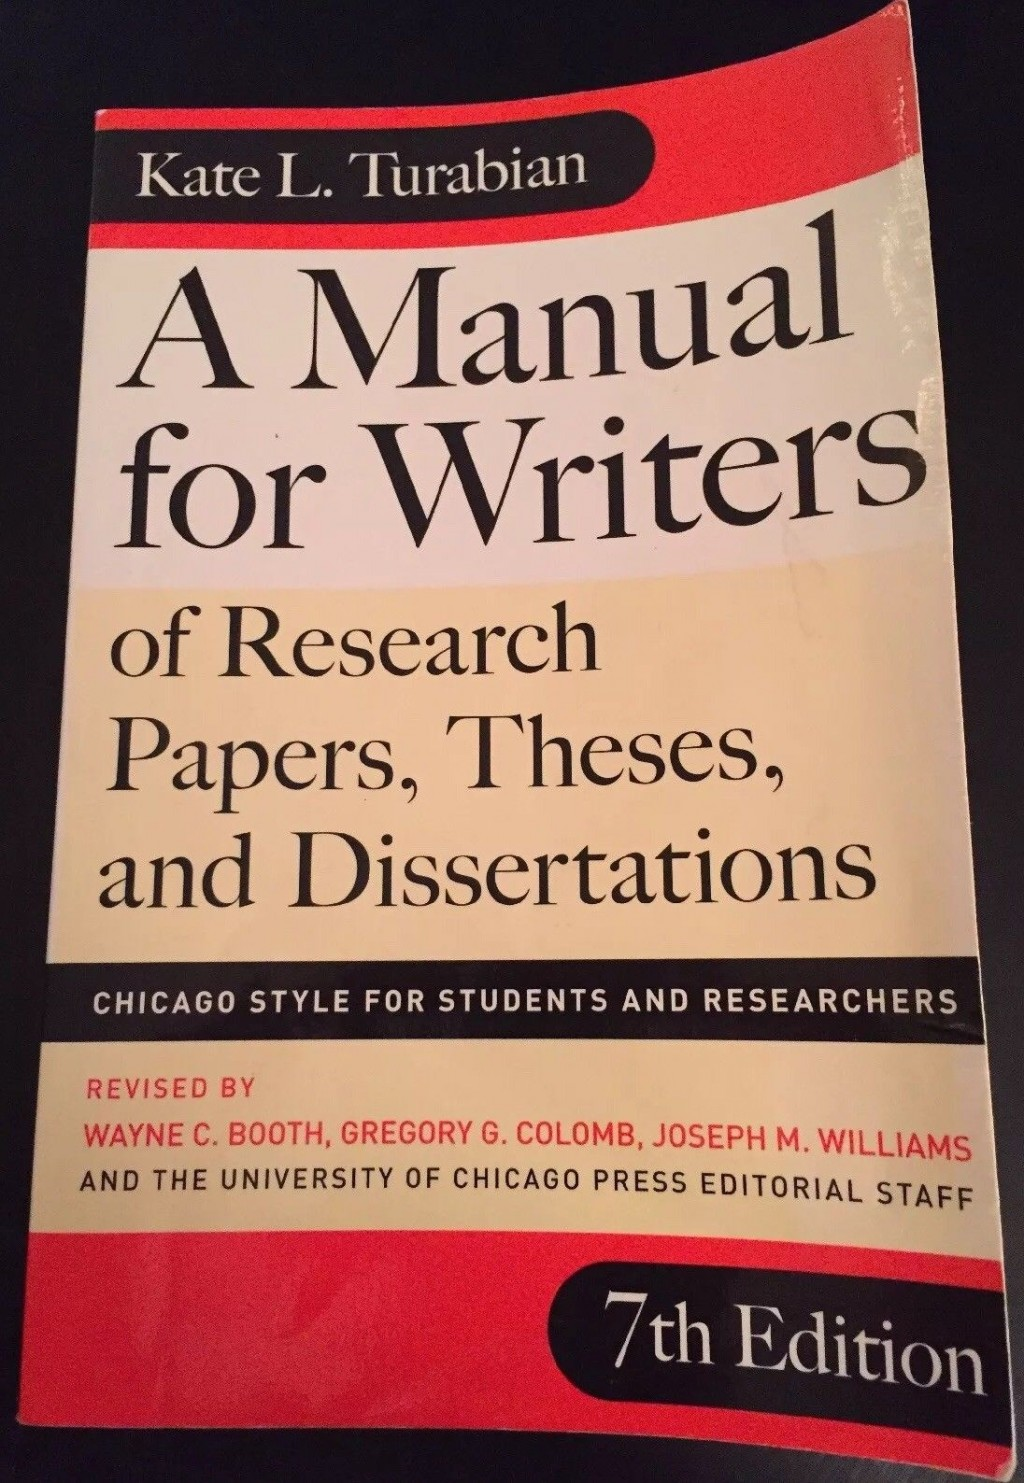 013 S L1600 Research Paper Manual For Writers Of Papers Theses And Sensational A Dissertations Eighth Edition Pdf 9th 8th Large